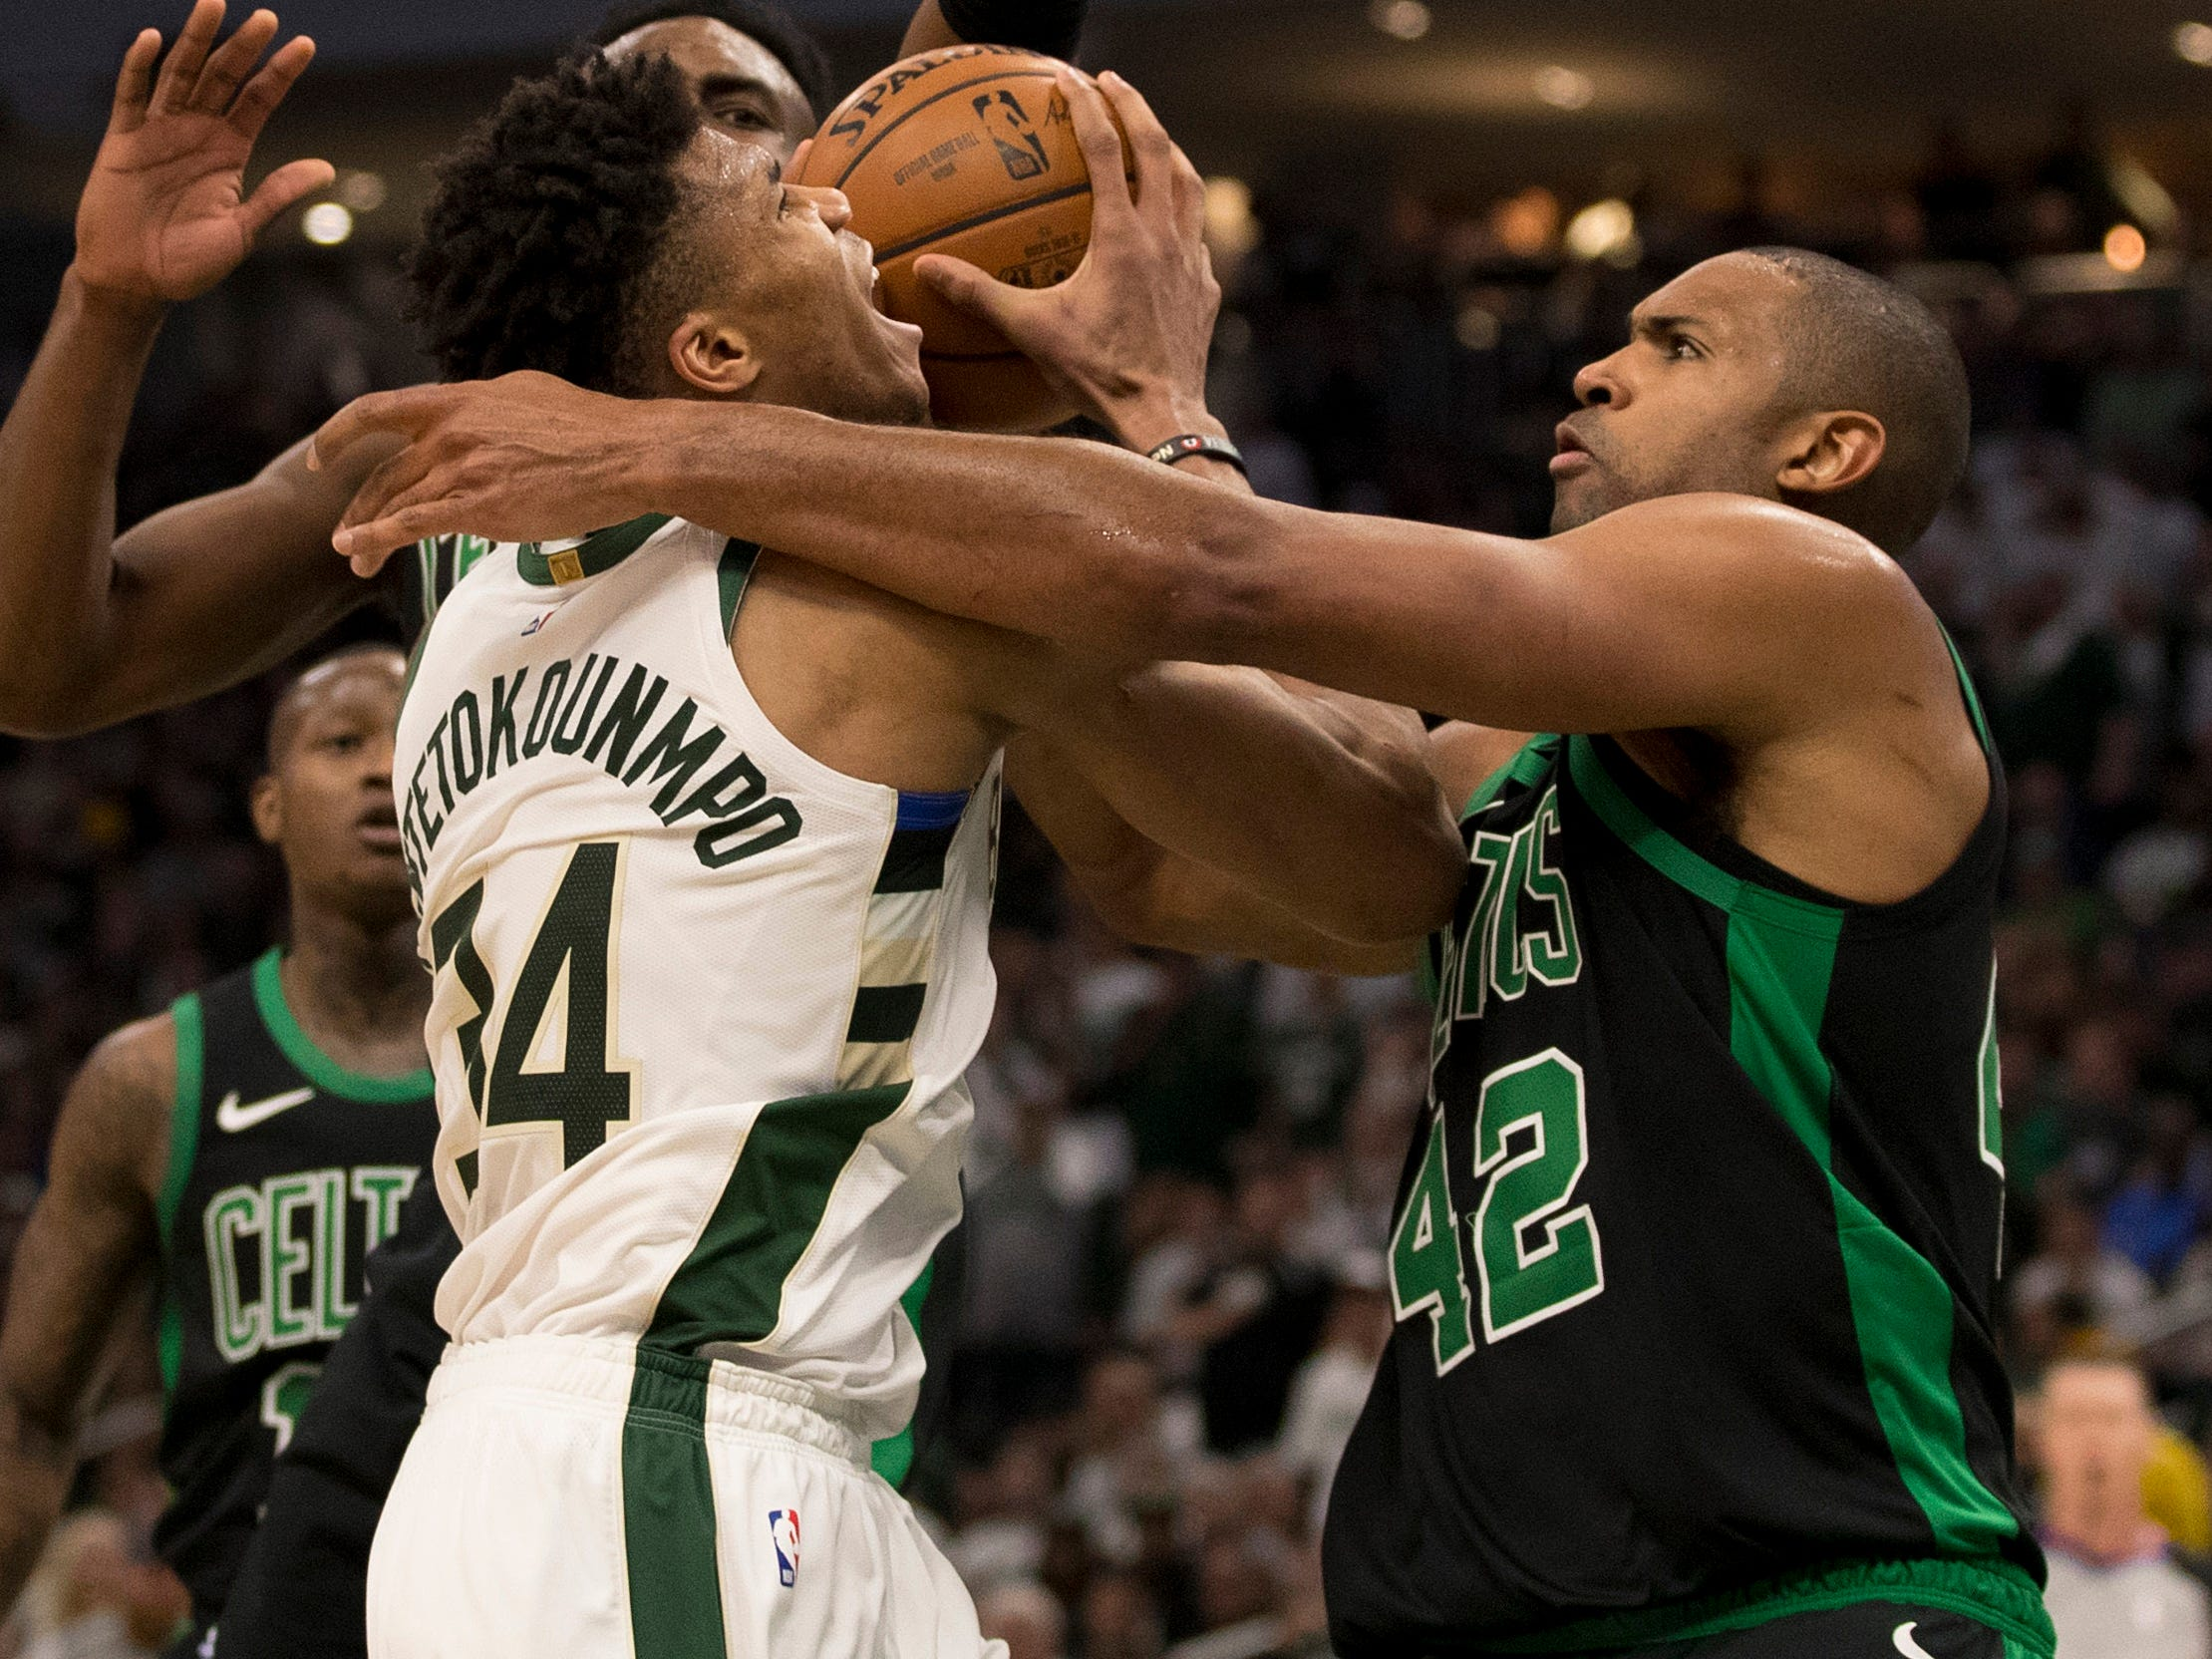 April 28: Celtics defender Al Horford (42) ties up Bucks forward Giannis Antetokounmpo (34) on a drive to the hoop during Game 1.